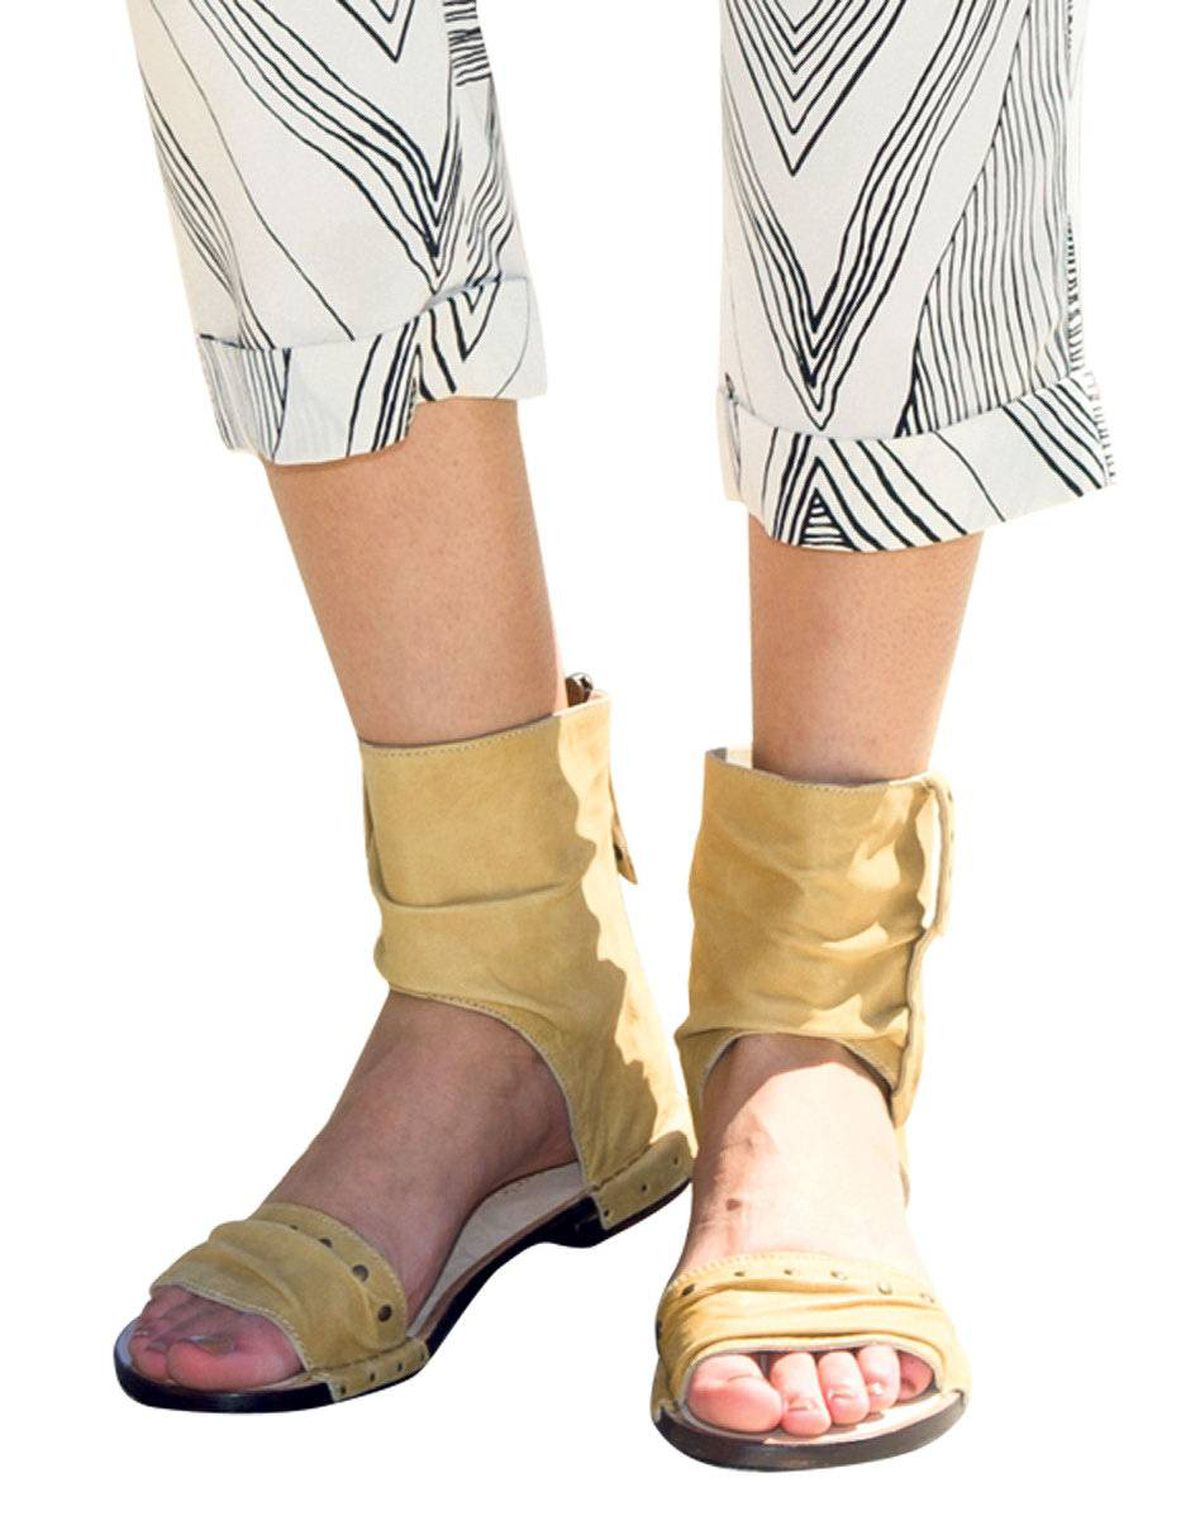 These breathable boots were made for walking. Bernardo sandal boots, $250 at Ron White. BCBGMAXAZRIA pants, $110.